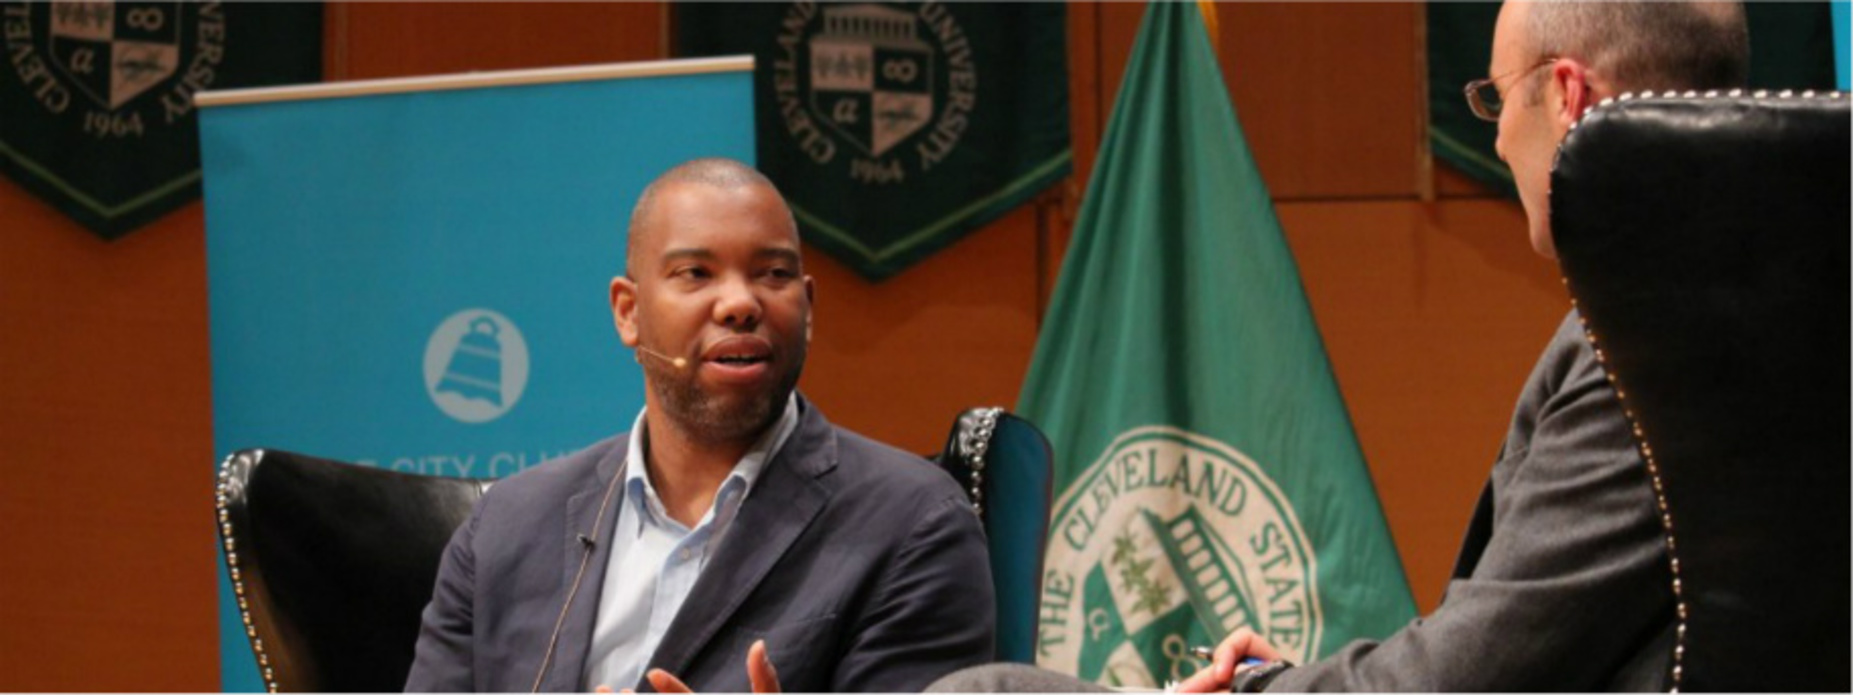 "Ta-Nehisi Coates On Dismantling White Supremacy: ""Any Definition Of Race Always Depends Upon Power"""